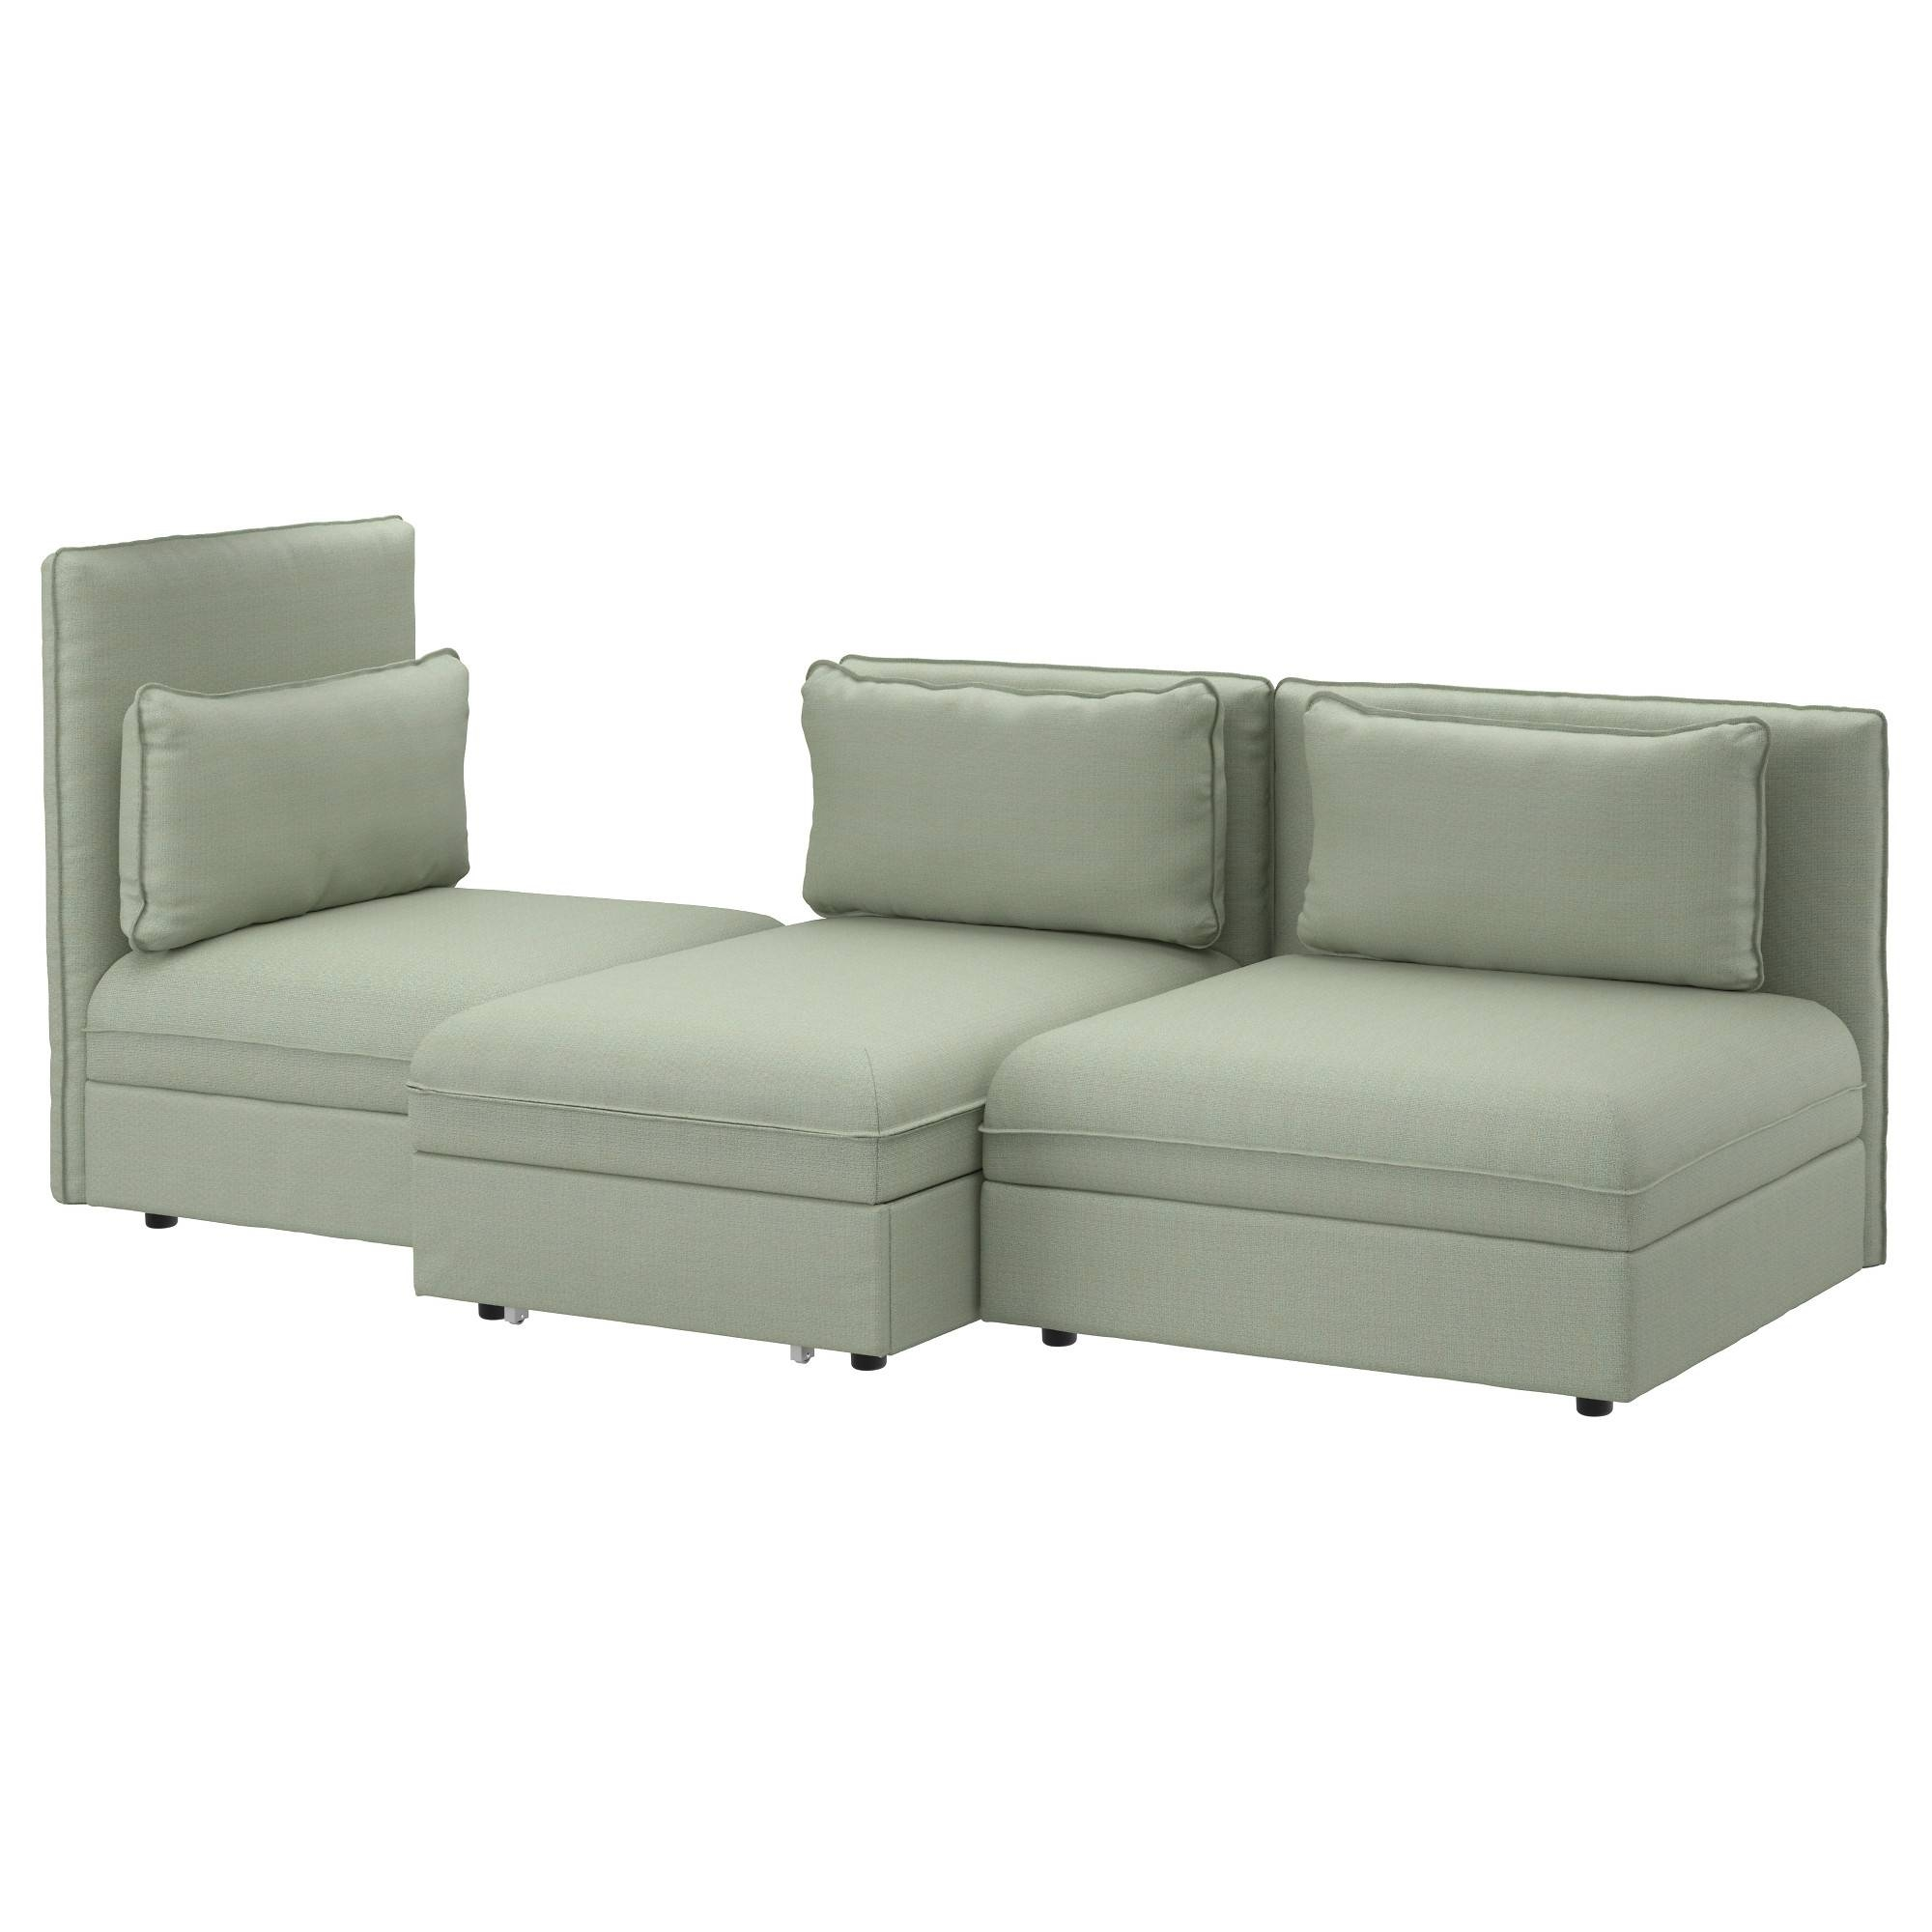 Sofa Beds & Futons - Ikea intended for Ikea Sleeper Sofa Sectional (Image 17 of 25)